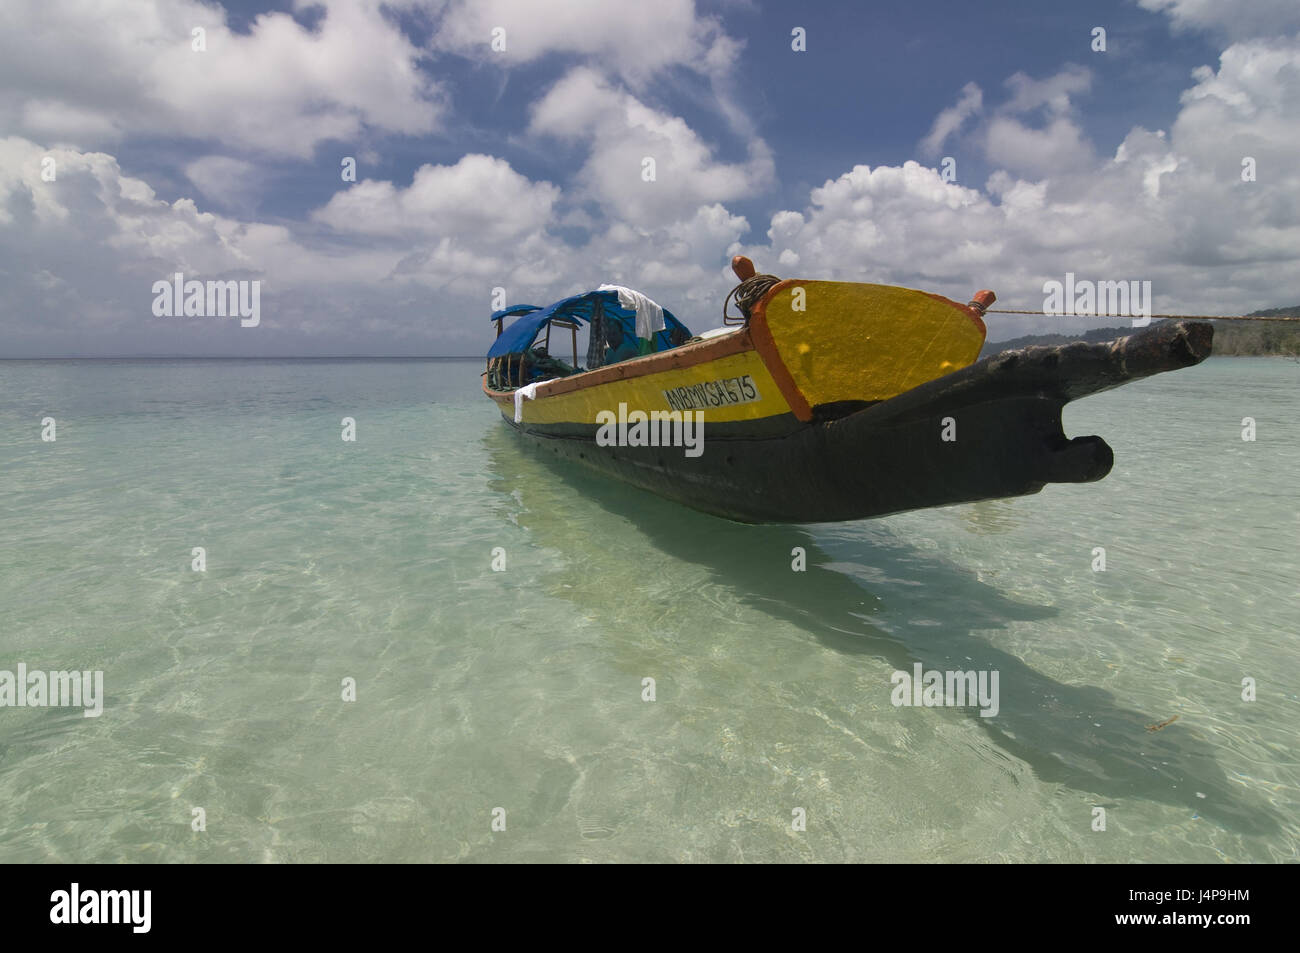 Boot, coast, Indian ocean, Havelock Insel, Andamanen, India, - Stock Image